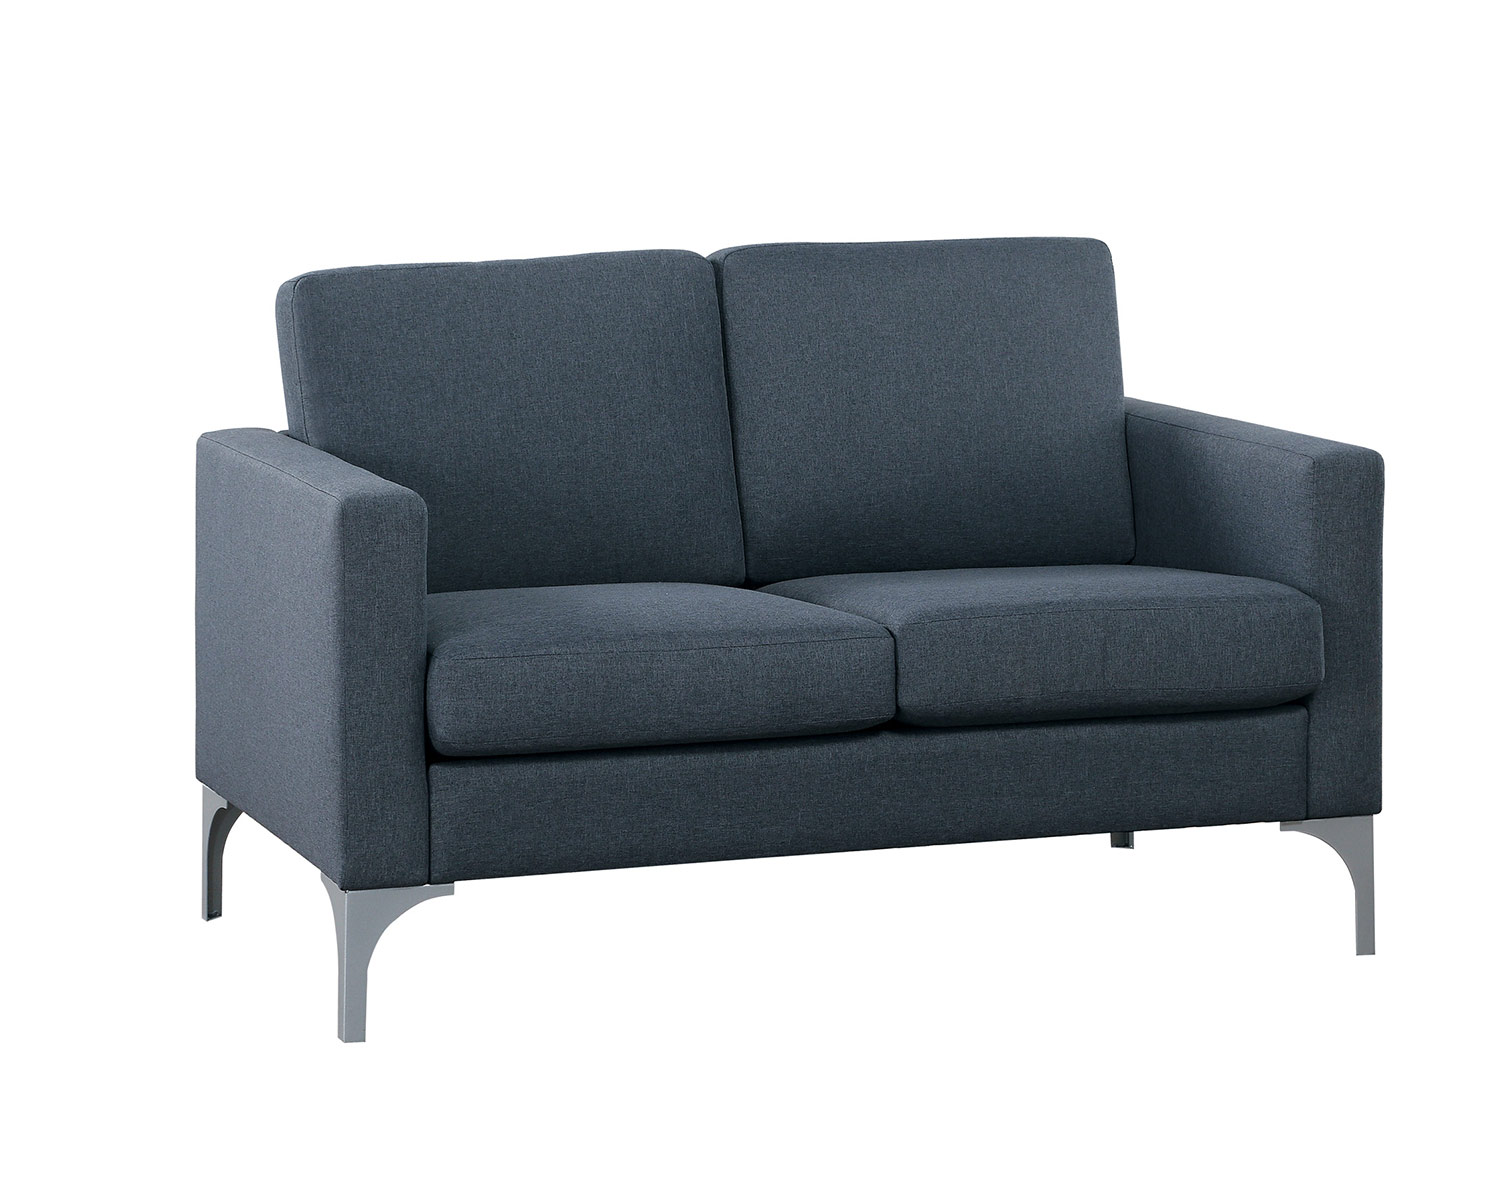 Homelegance Soho Love Seat - Dark Gray - Brownish Gray